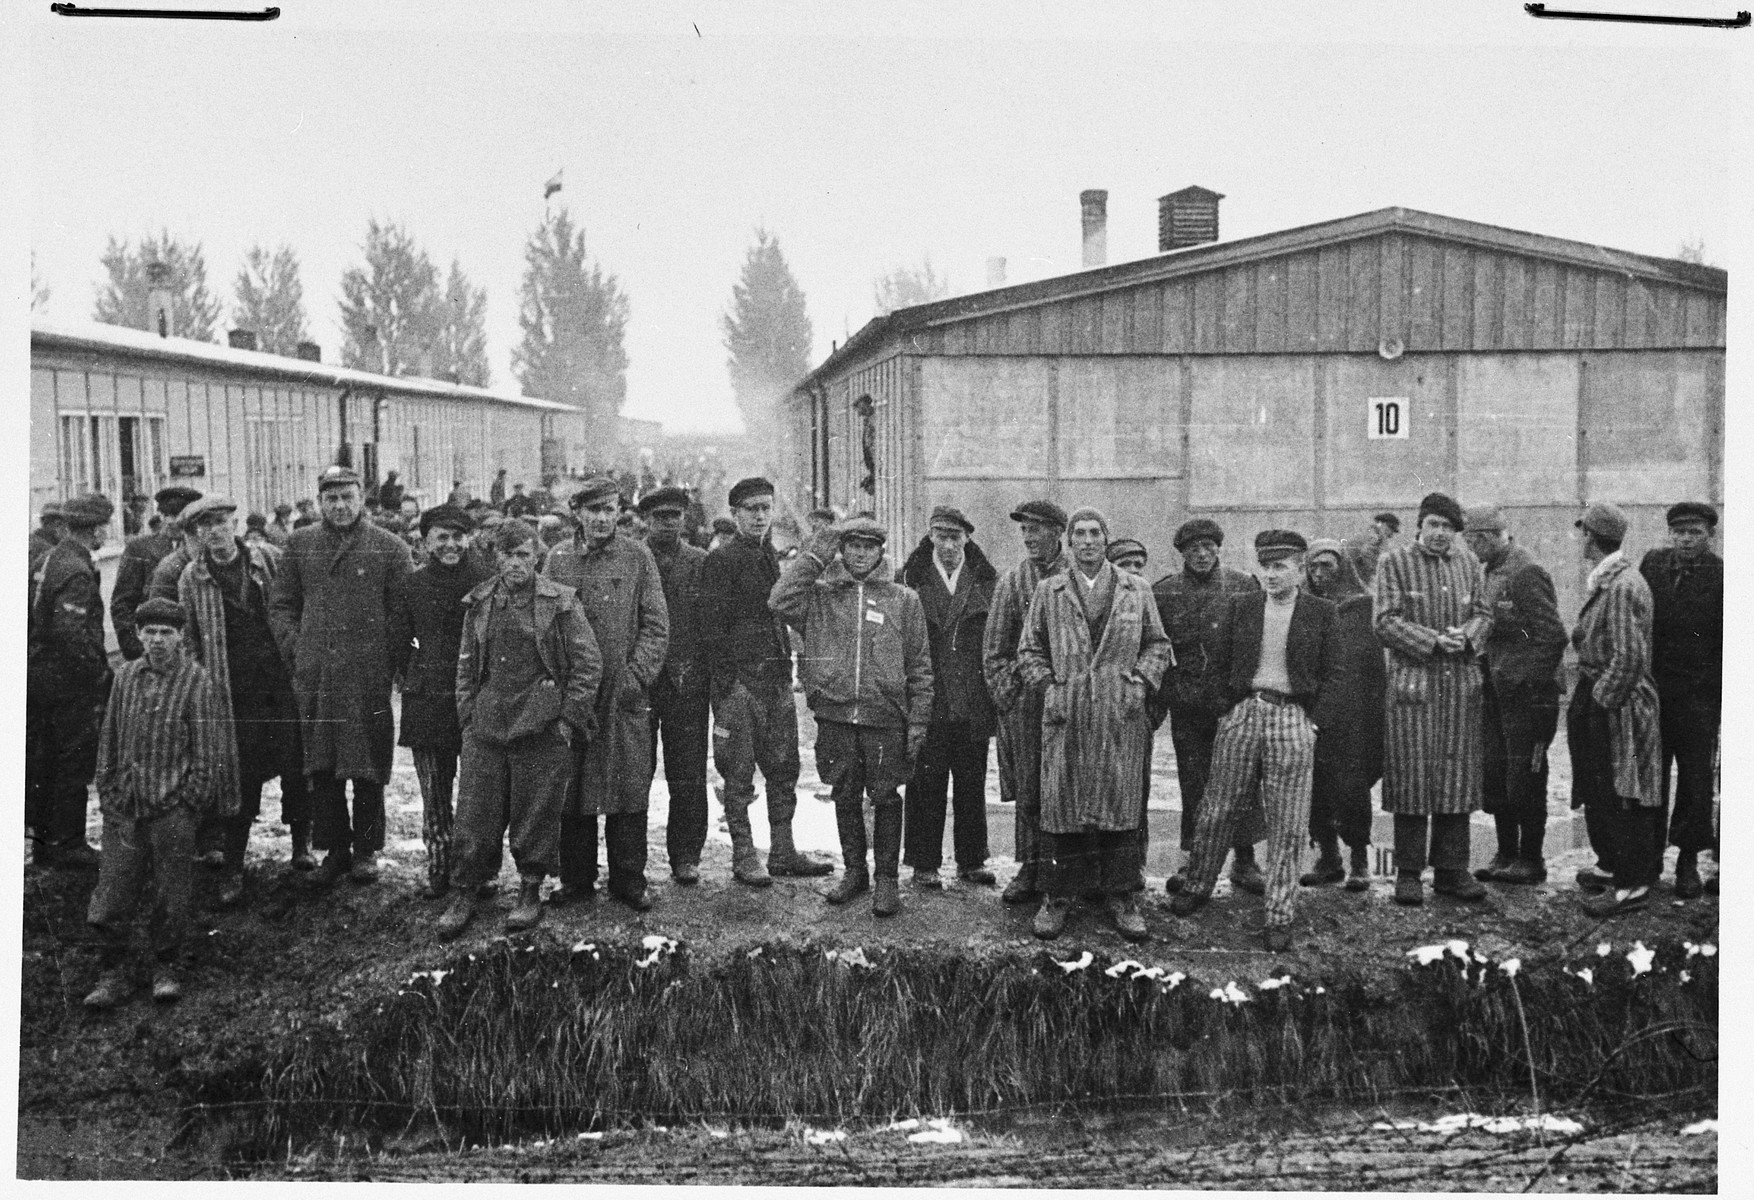 Group portrait of survivors standing next to the moat in the Dachau concentration camp following liberation.